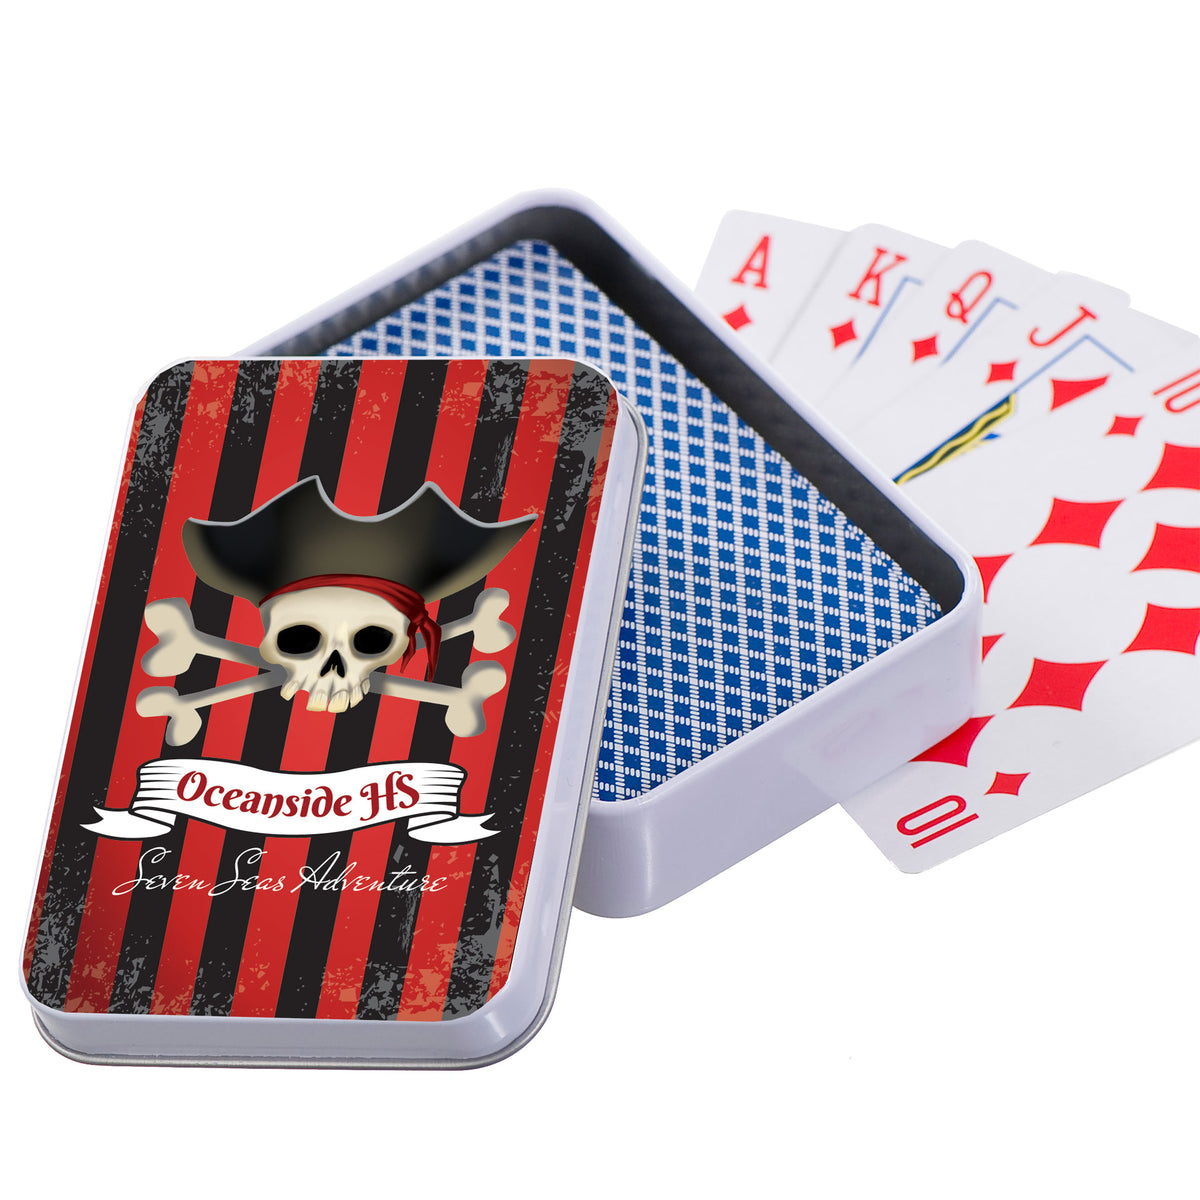 Seven Seas Adventure Personalized Playing Card Case